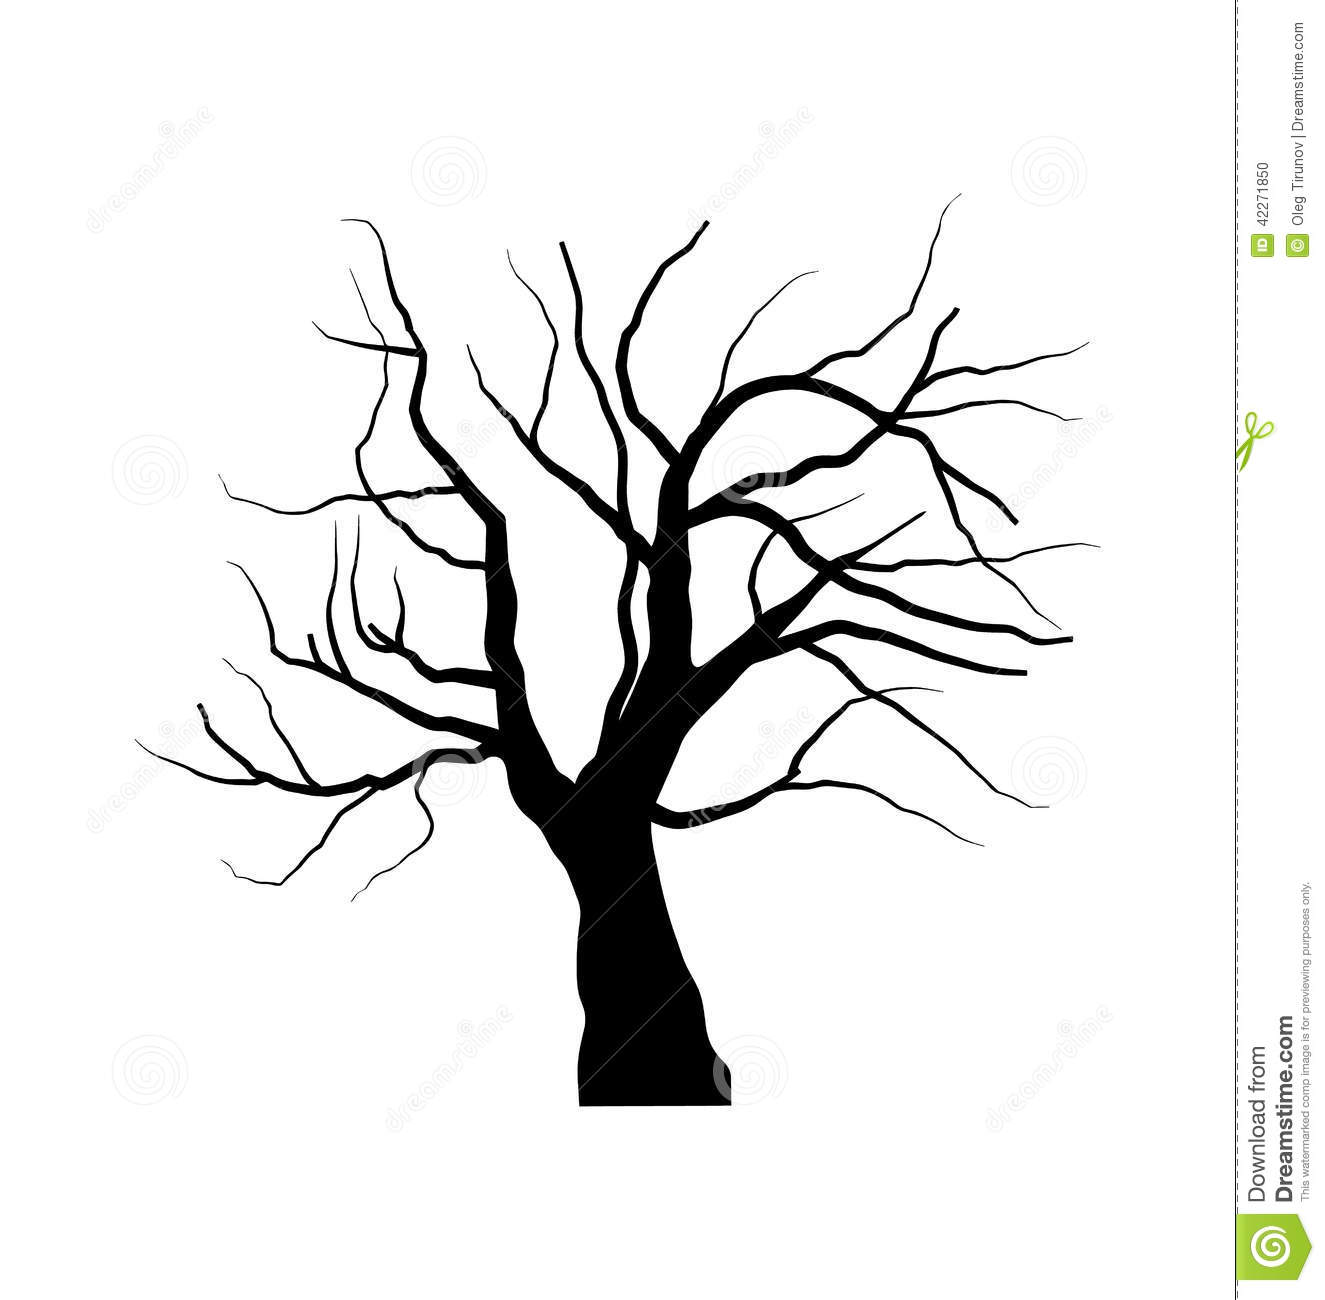 Sketch Of Dead Tree Without Leaves Isolated On White Backgroun Stock